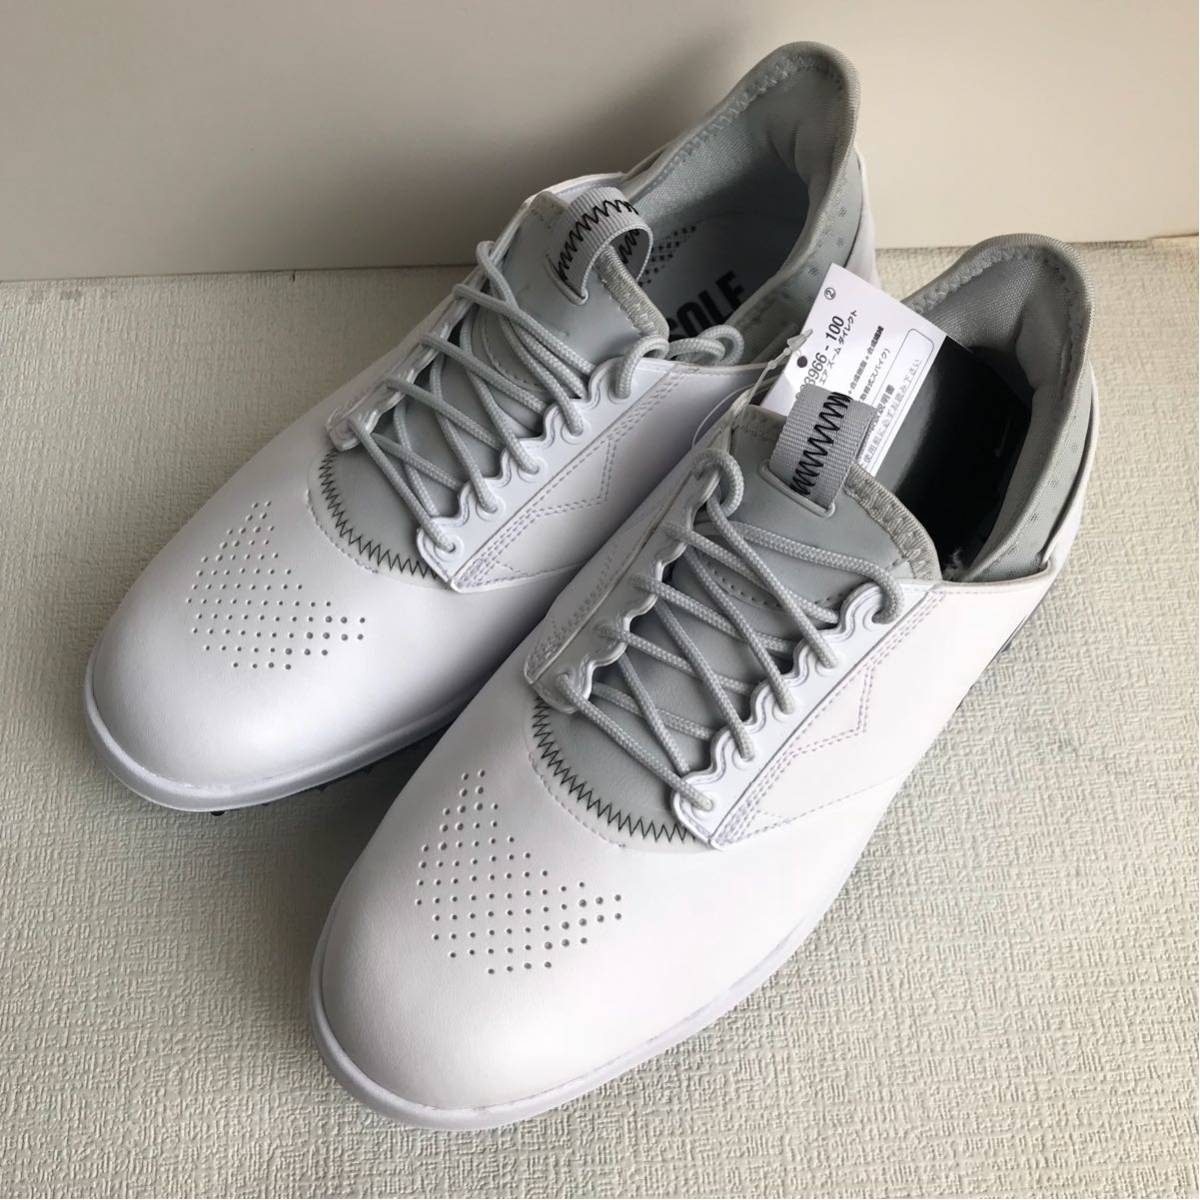 48c754f2a3d0 New  Nike  Air Zoom Direct Men s Golf Shoes (Wide) 27.0